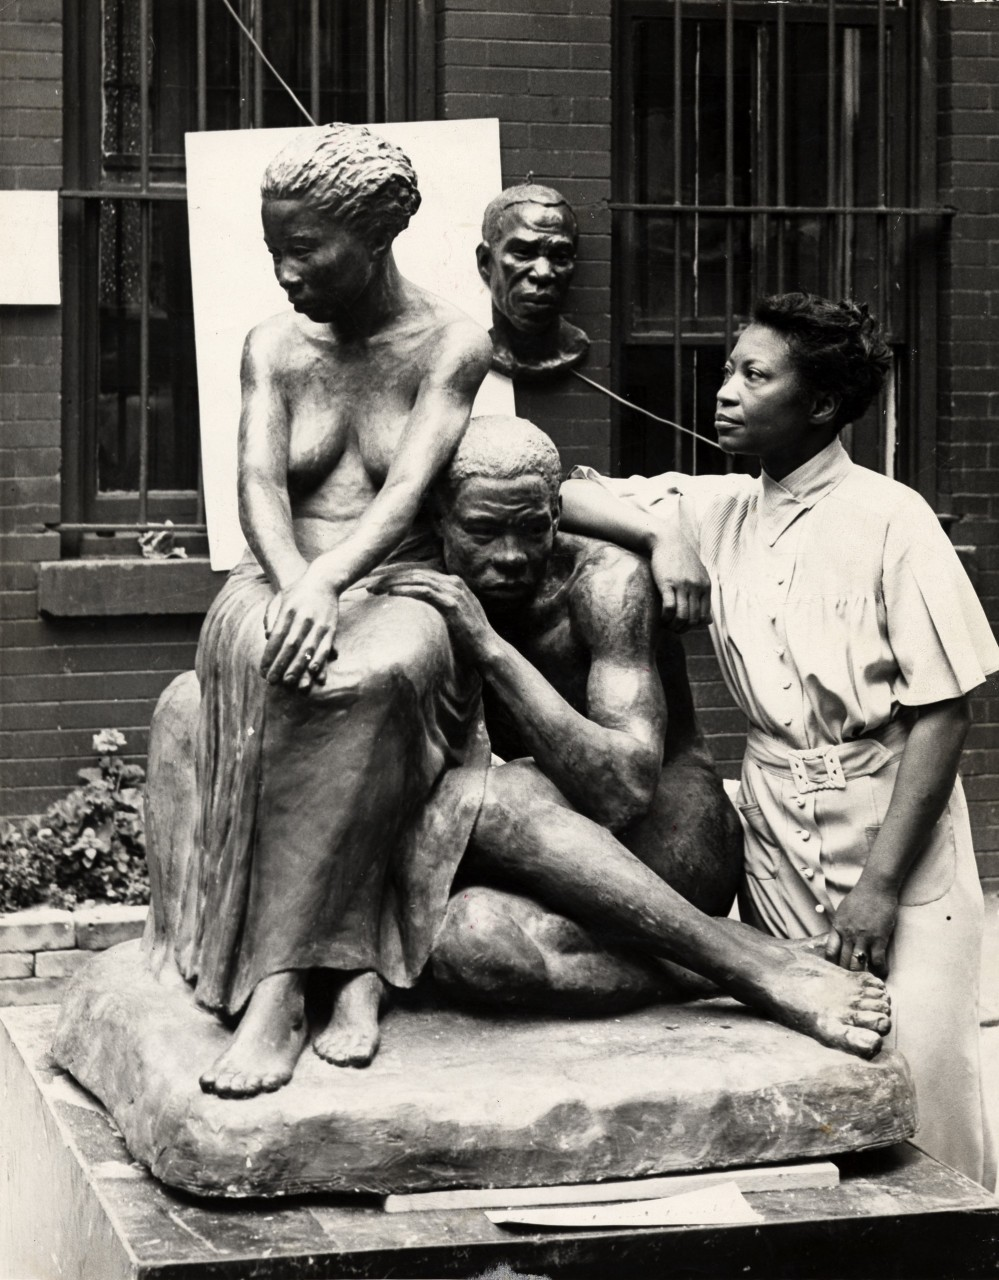 The 20th century artist Augusta Savage deserves more recognition